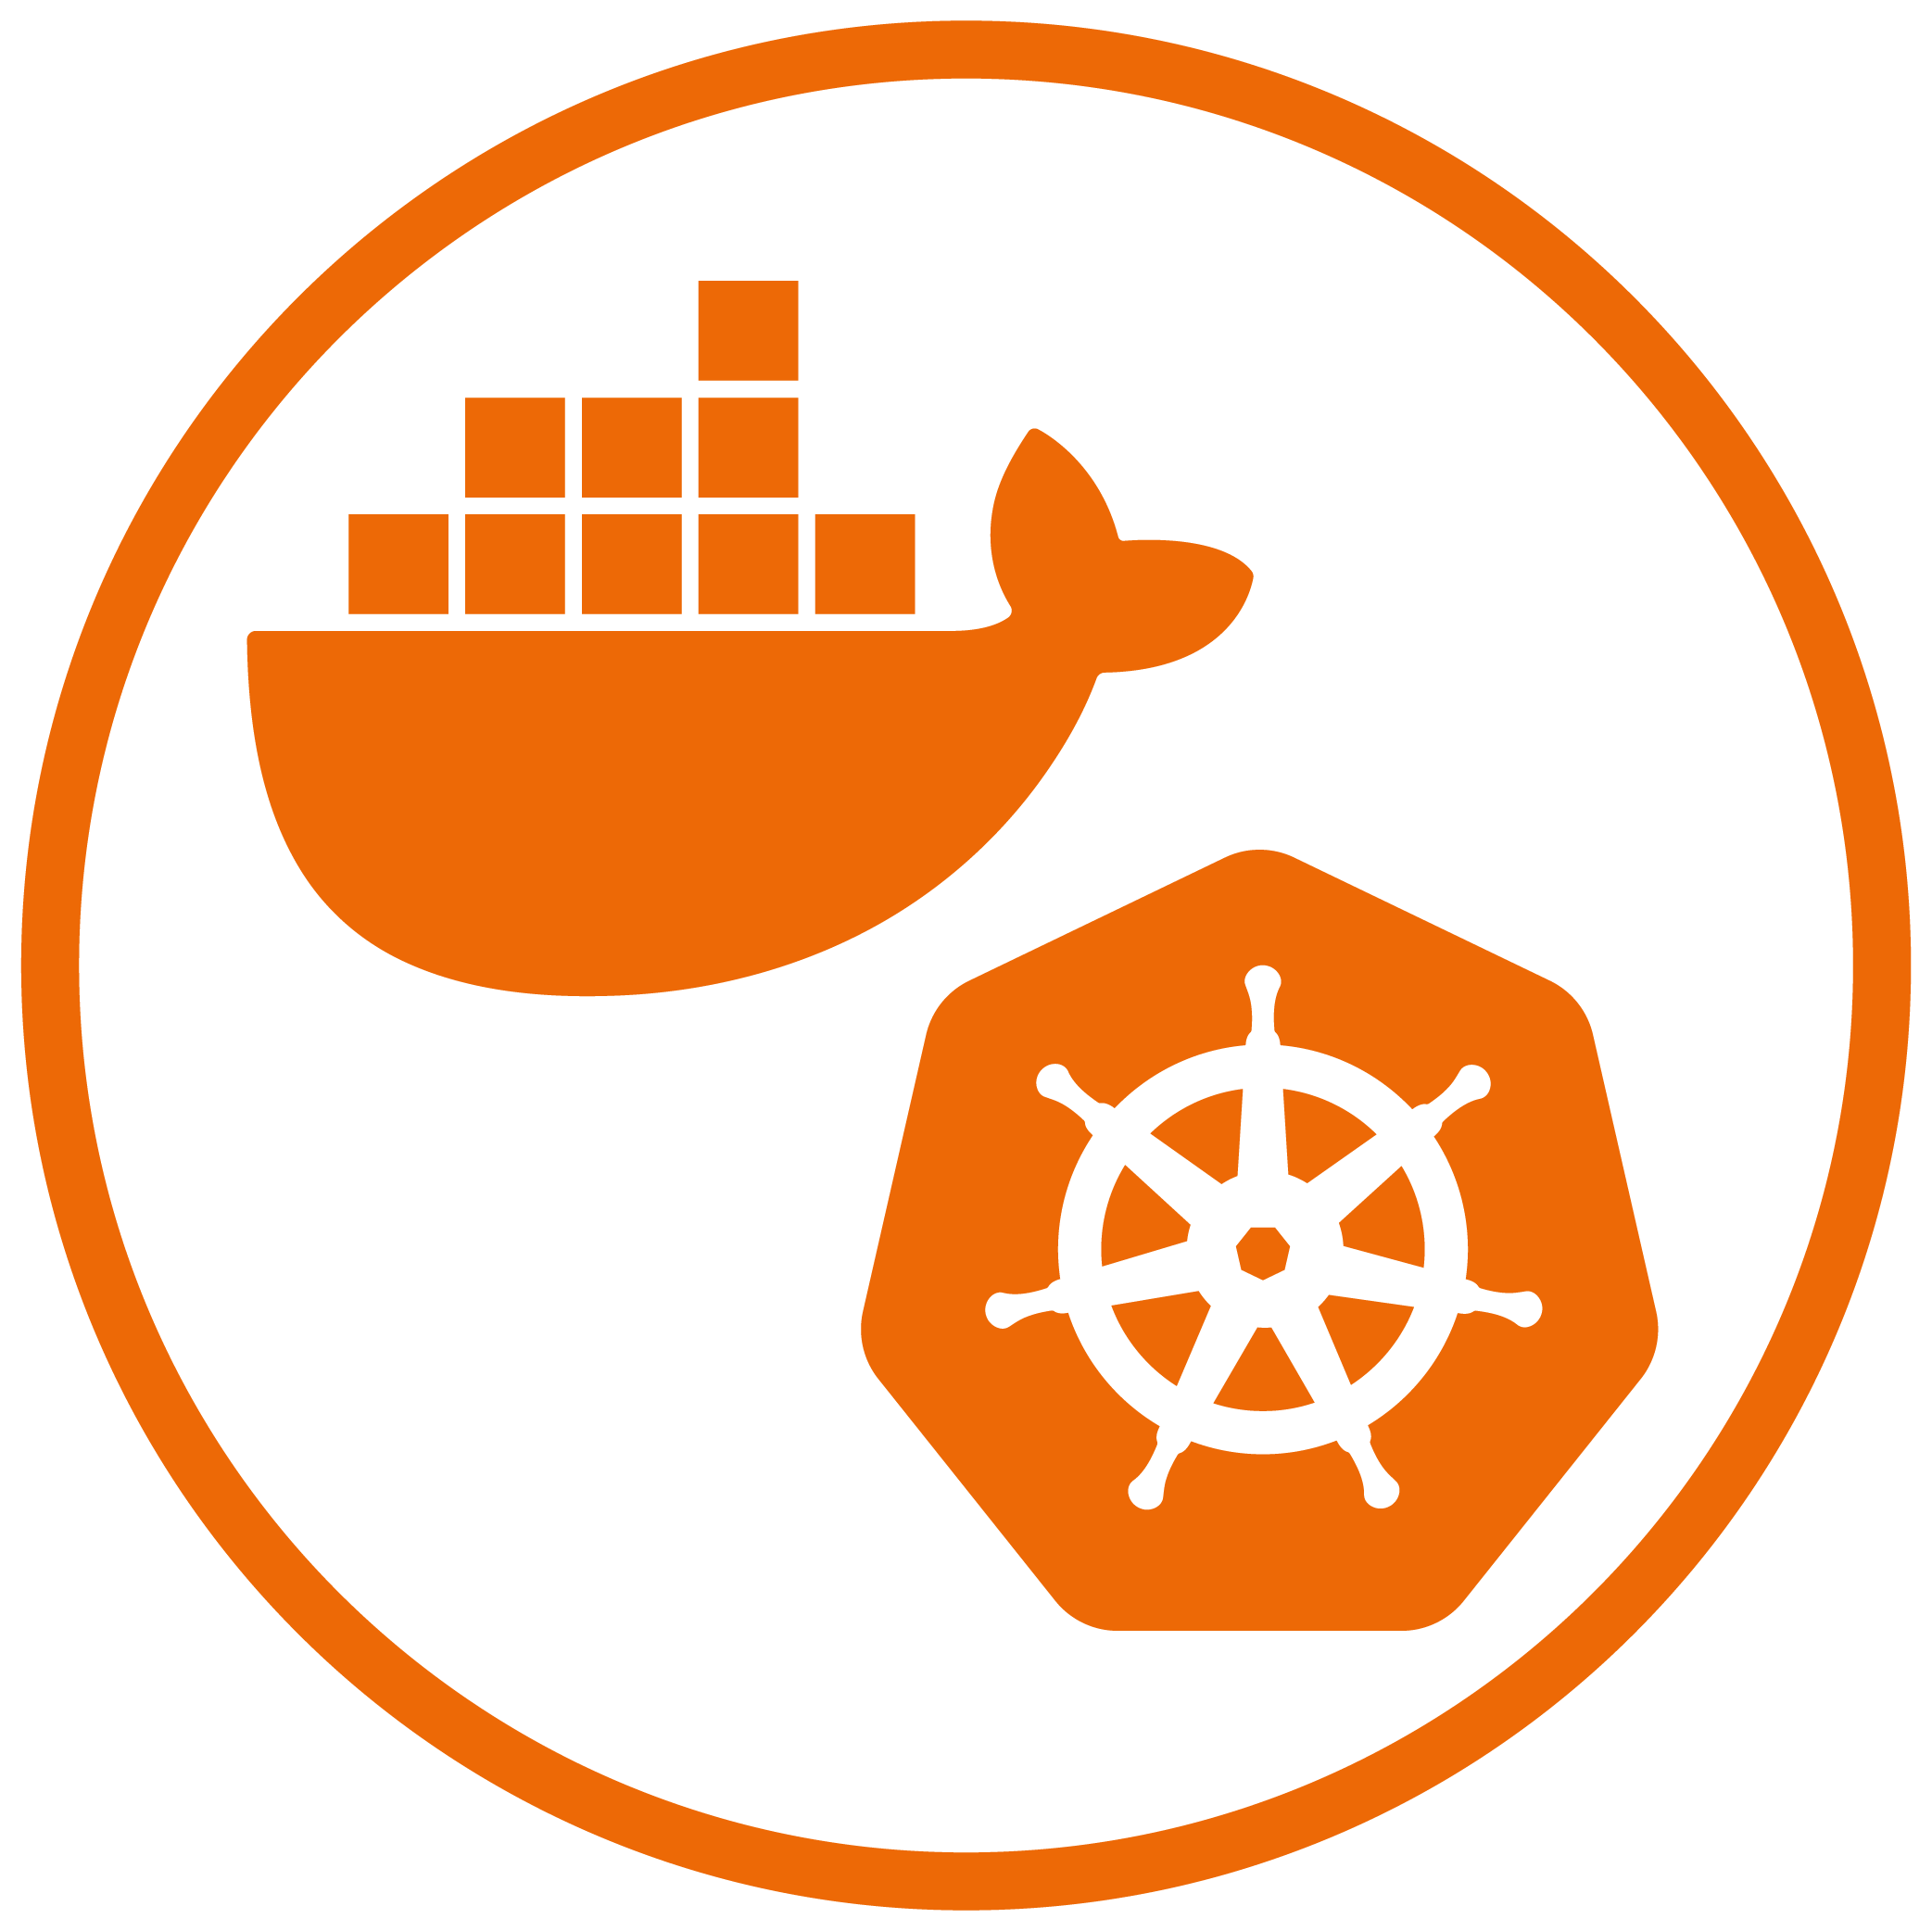 Built for Containers